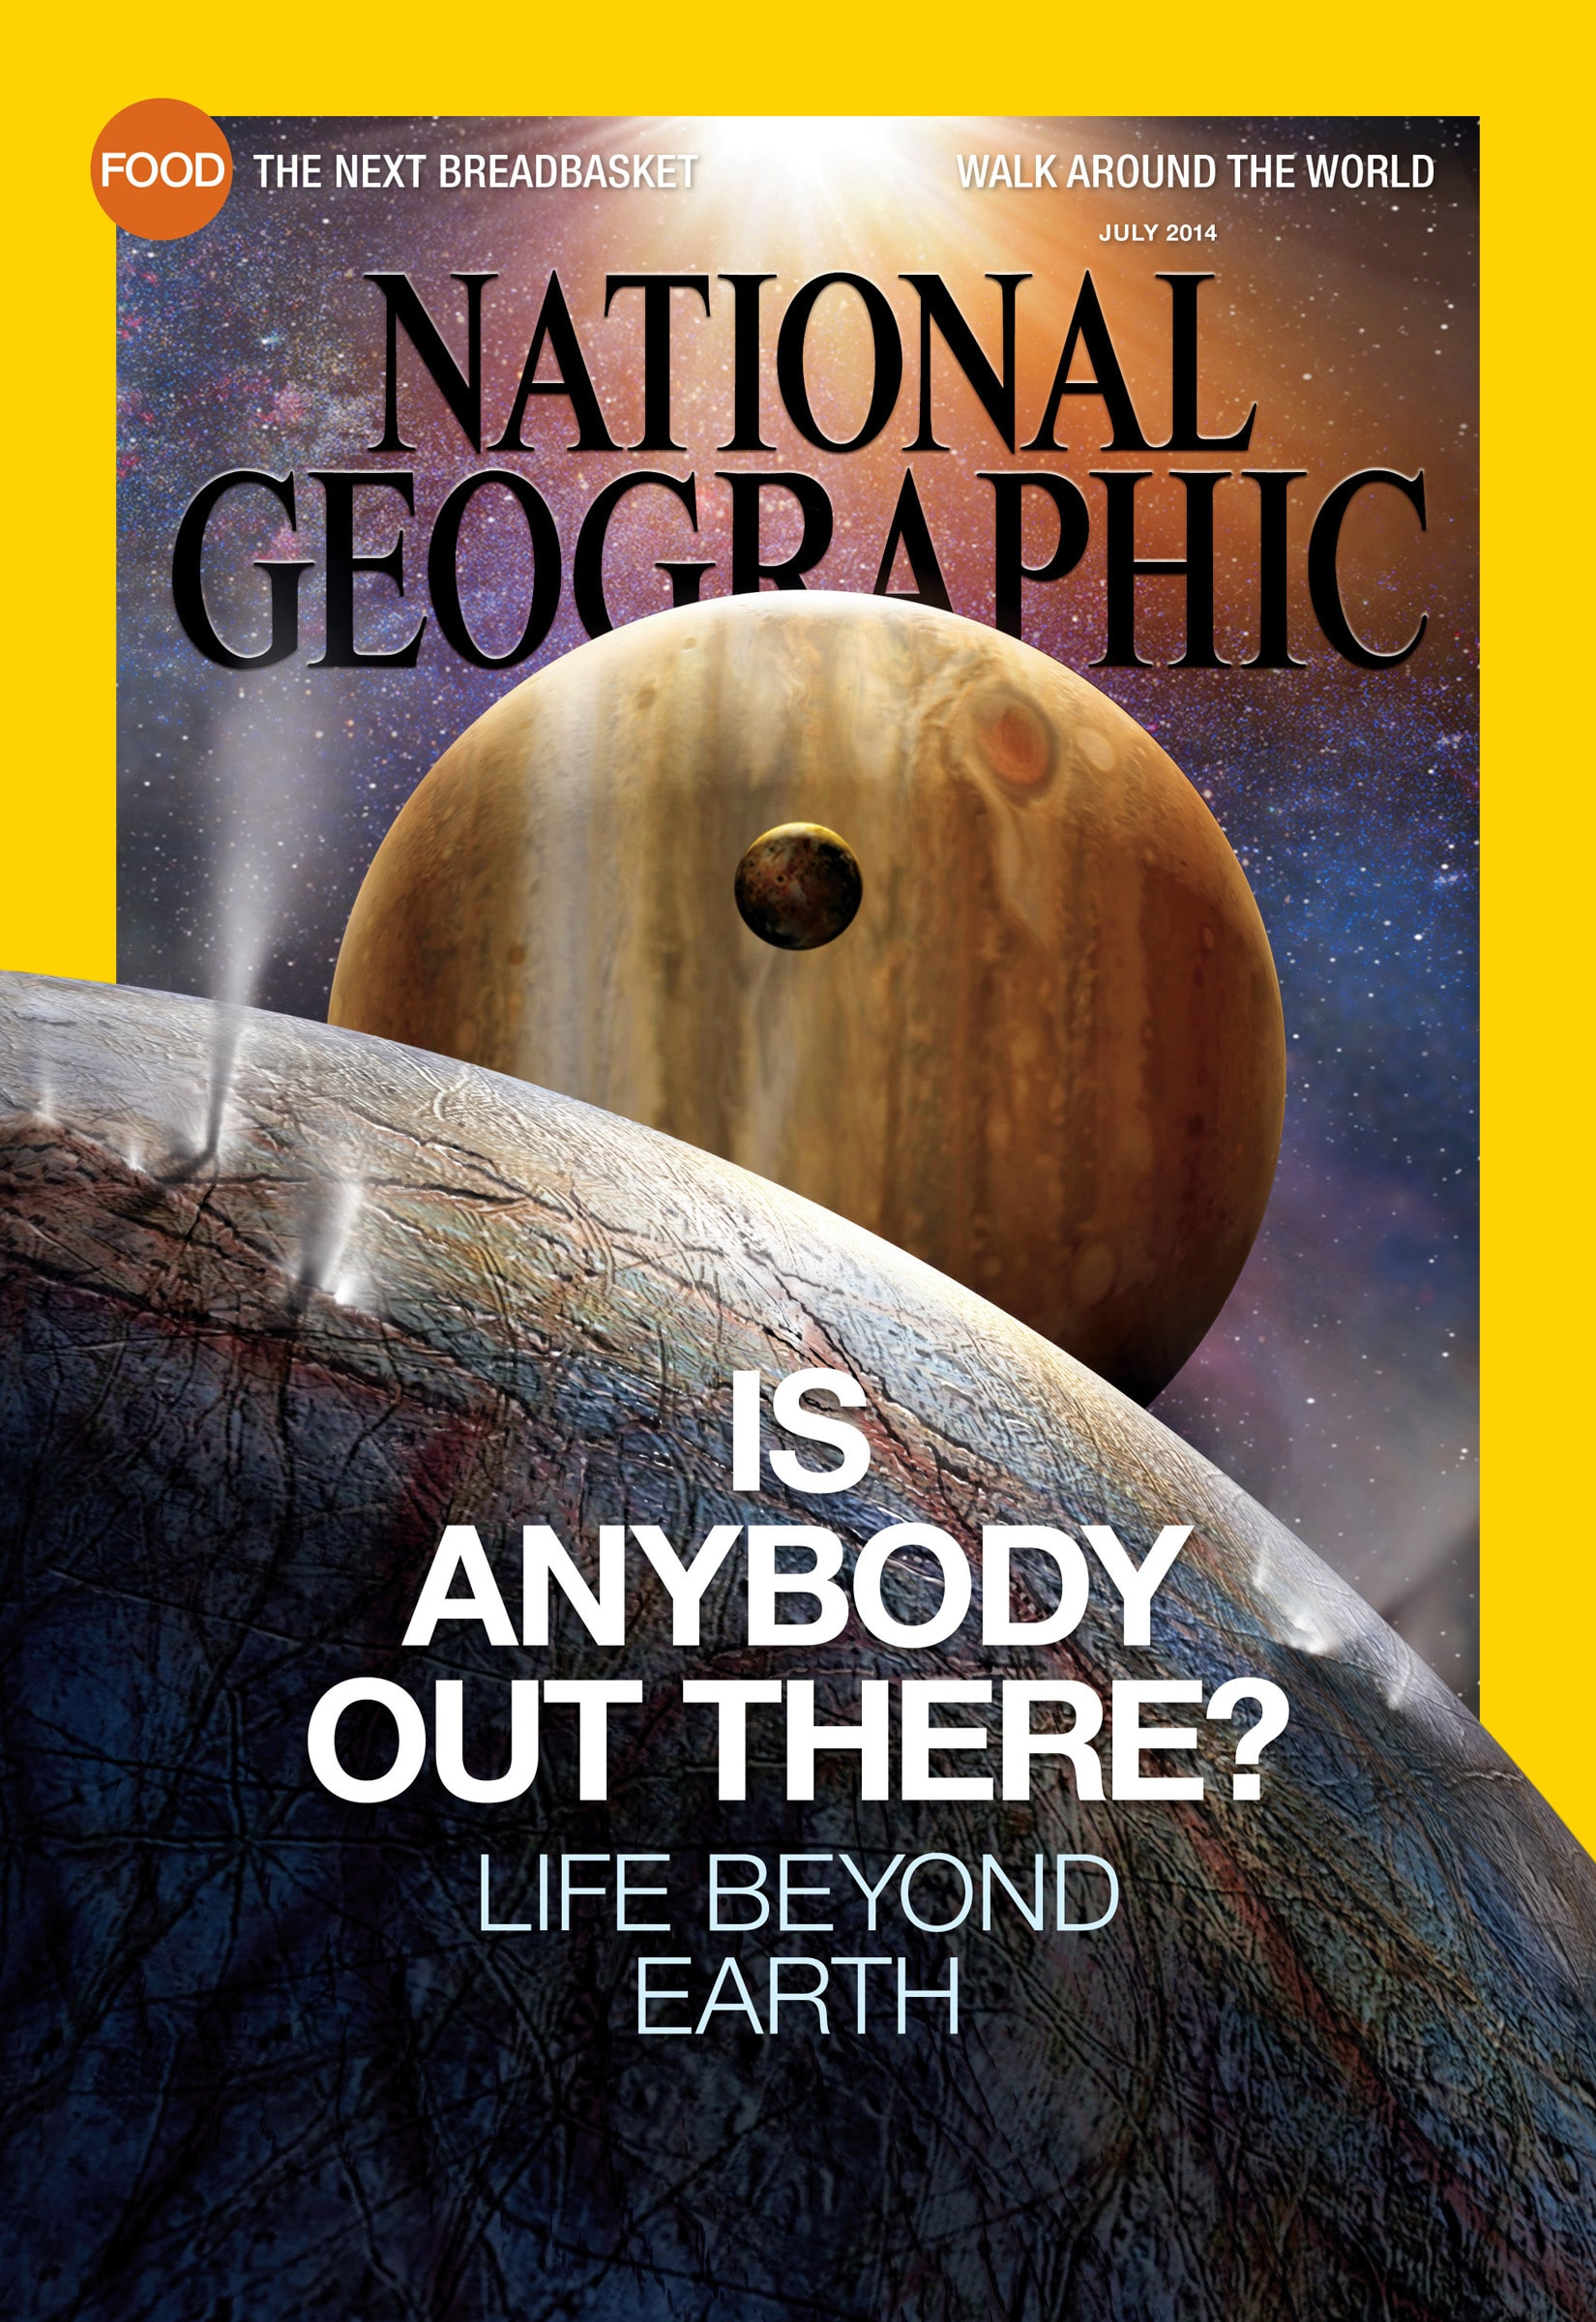 National Geographic gives Fox control of media assets in 725 million deal  The Washington Post